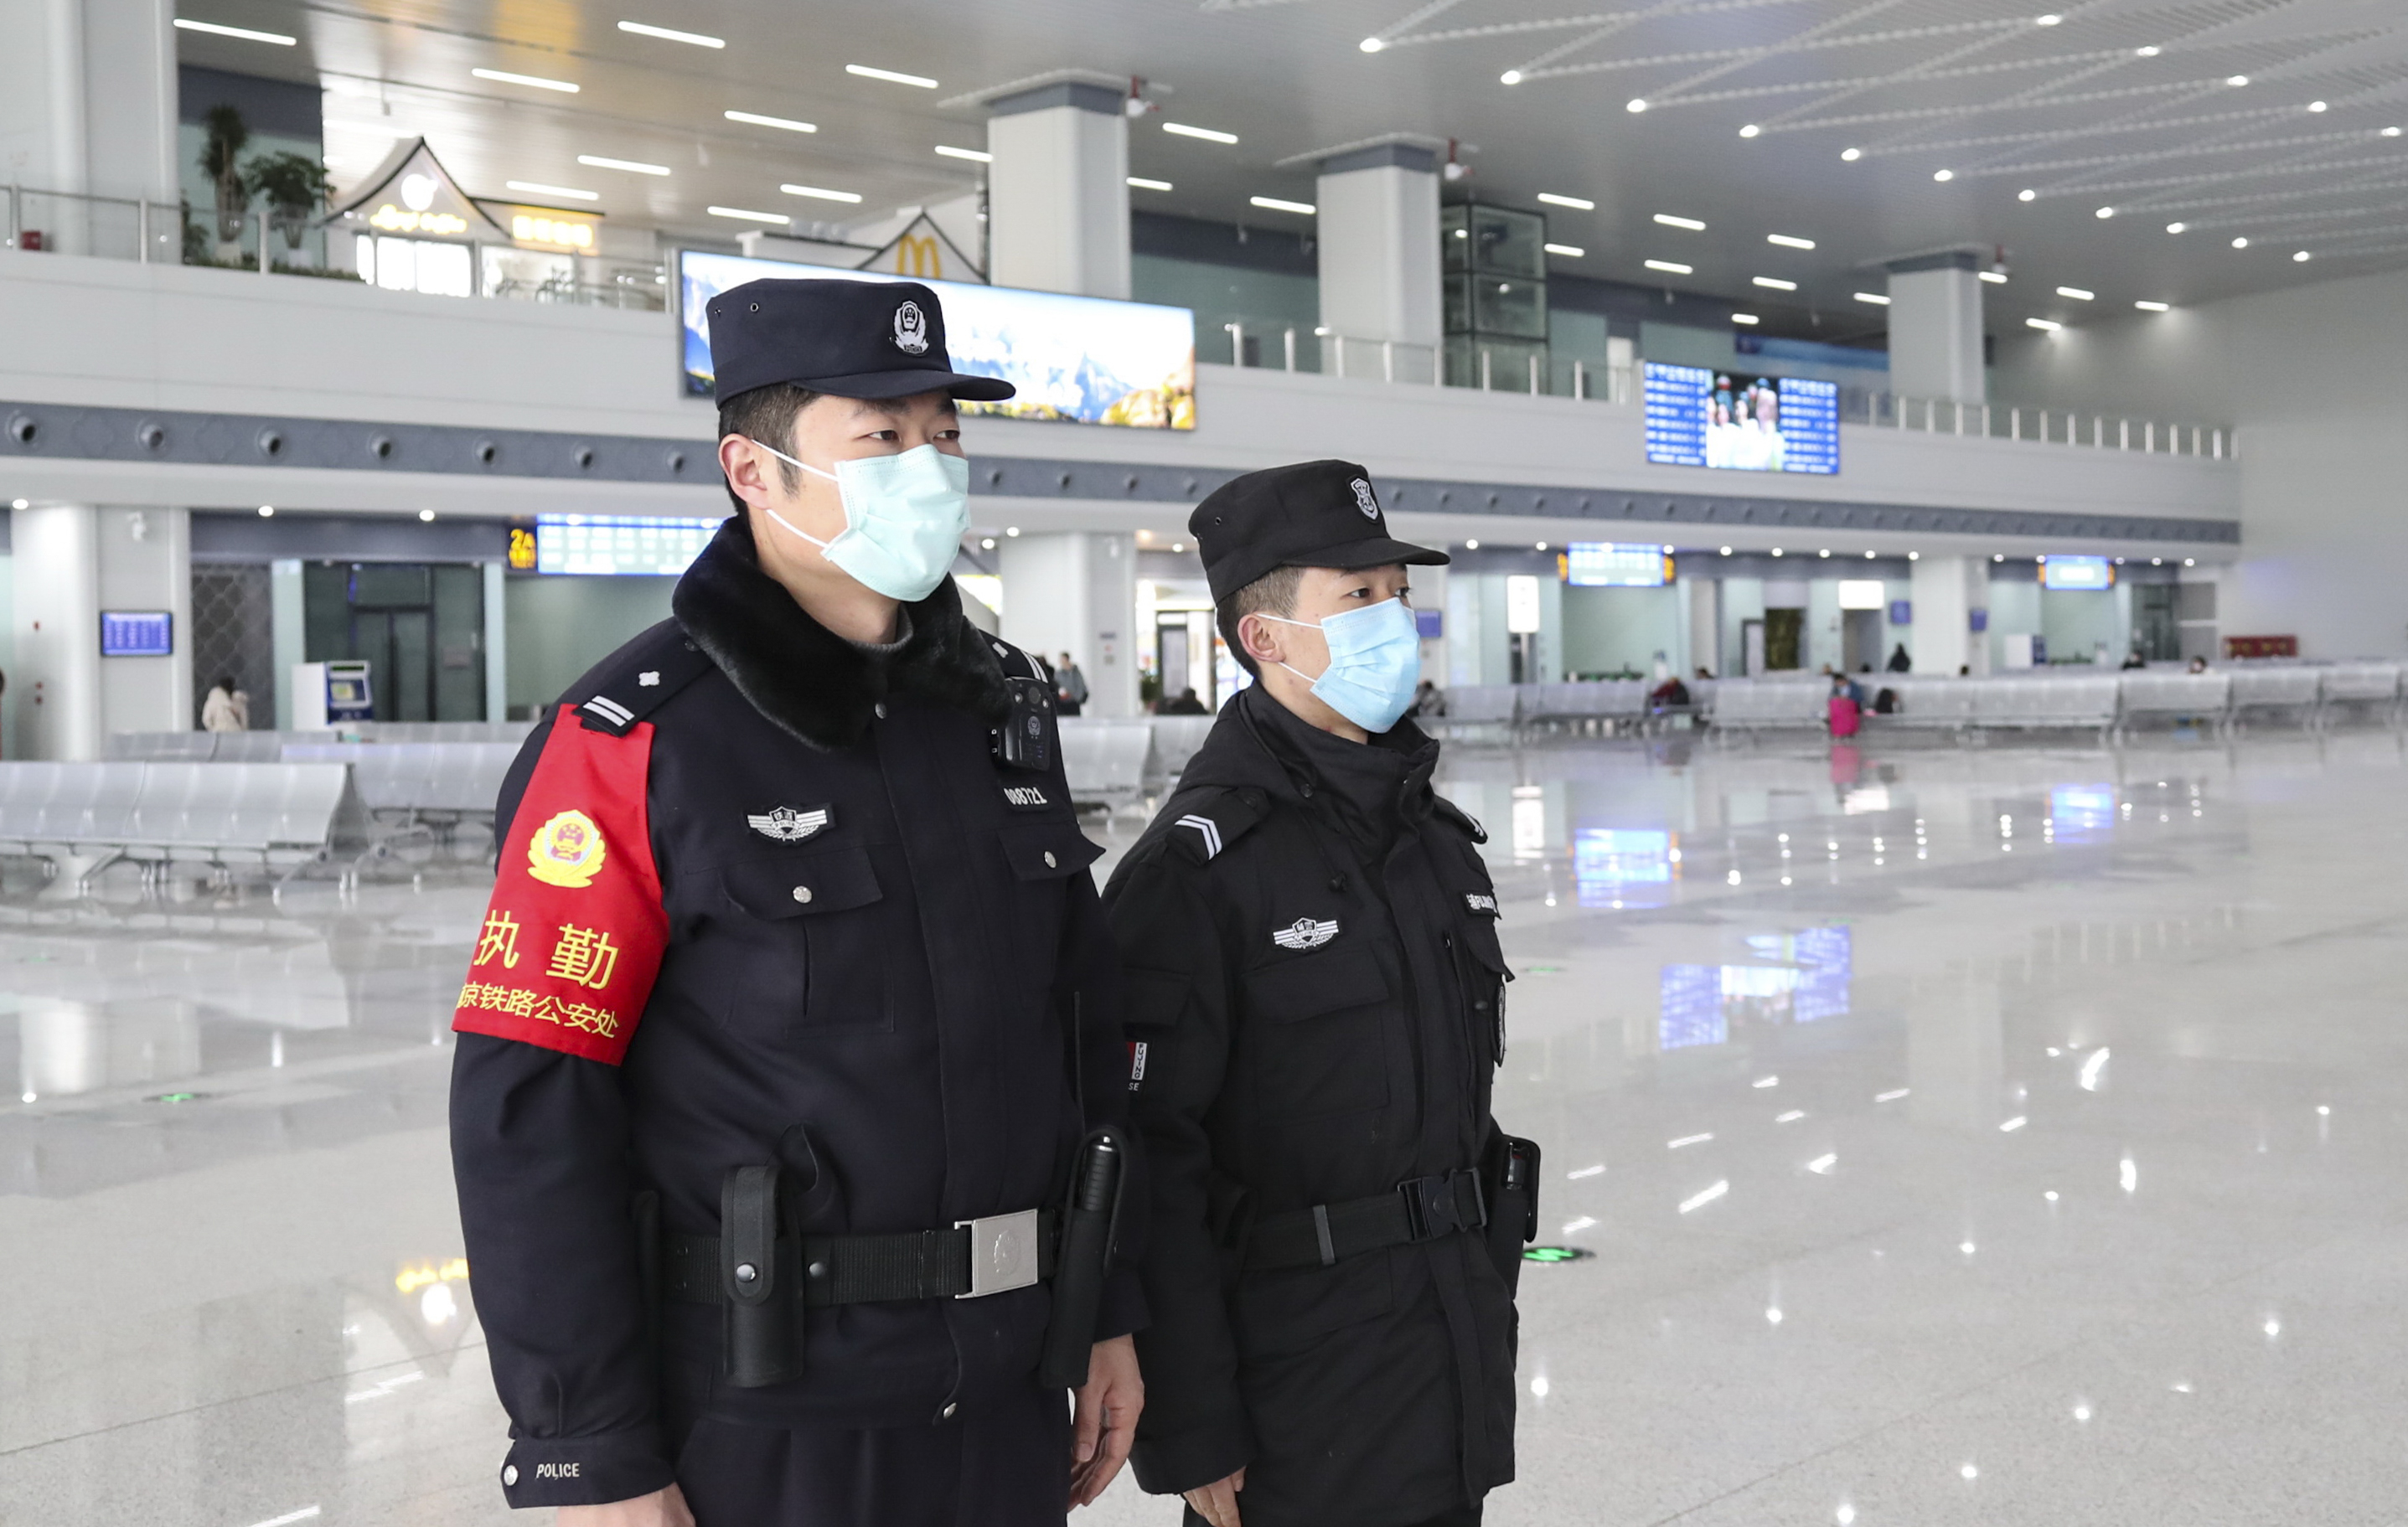 Chinese auxiliary police officers wearing face masks for the prevention of the new coronavirus stand guard at Huai'an East Railway Station during the Spring Festival travel rush ahead of the Chinese New Year in Huai'an City, east China's Jiangsu Province on January 23rd, 2020. (Photo by Zhao Qirui / Costfoto/Sipa USA)